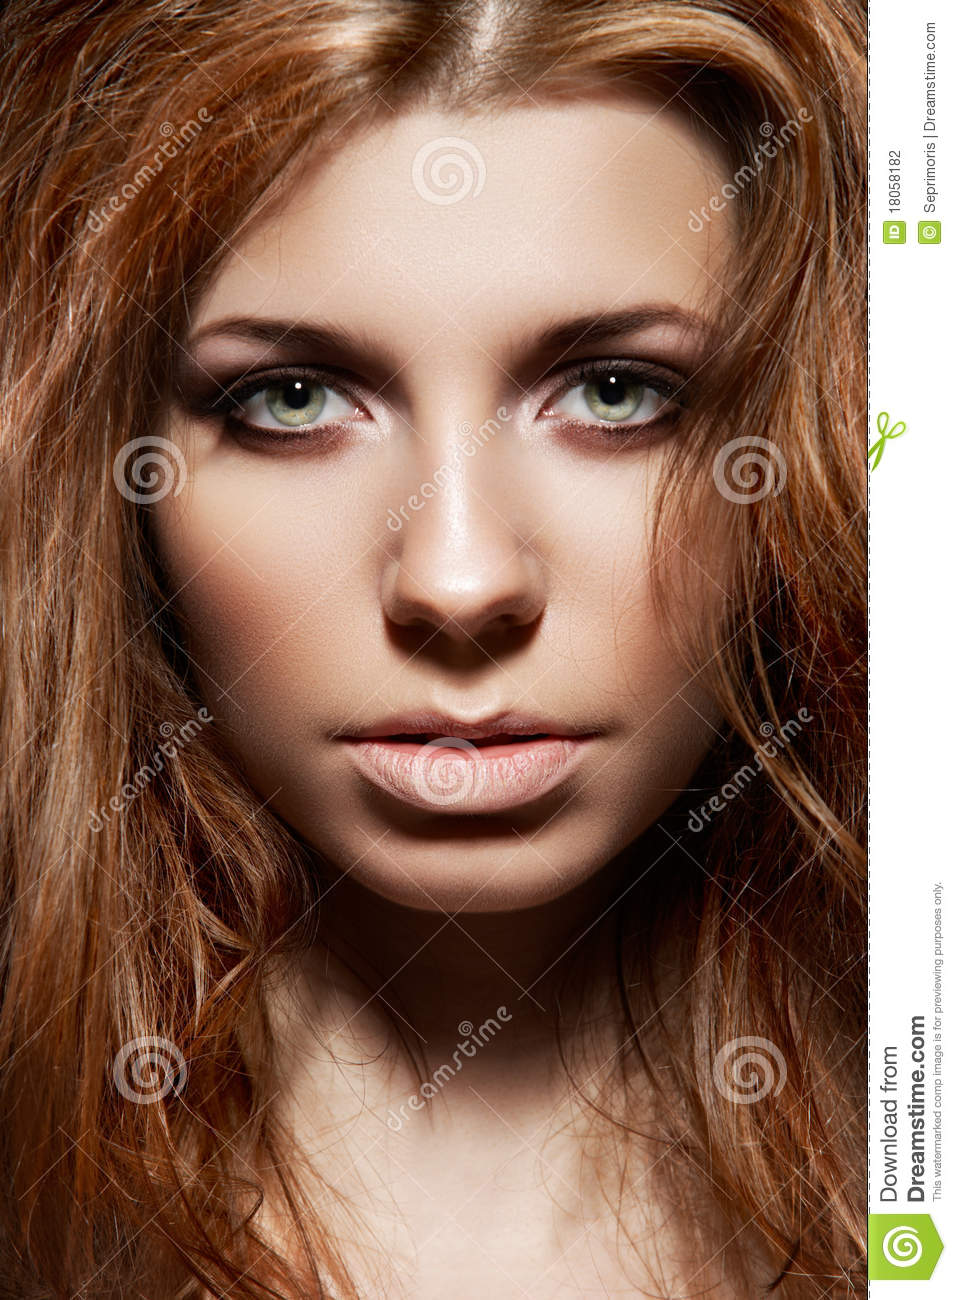 Fashion Model With Disheveled Hair Smoky Make Up Stock